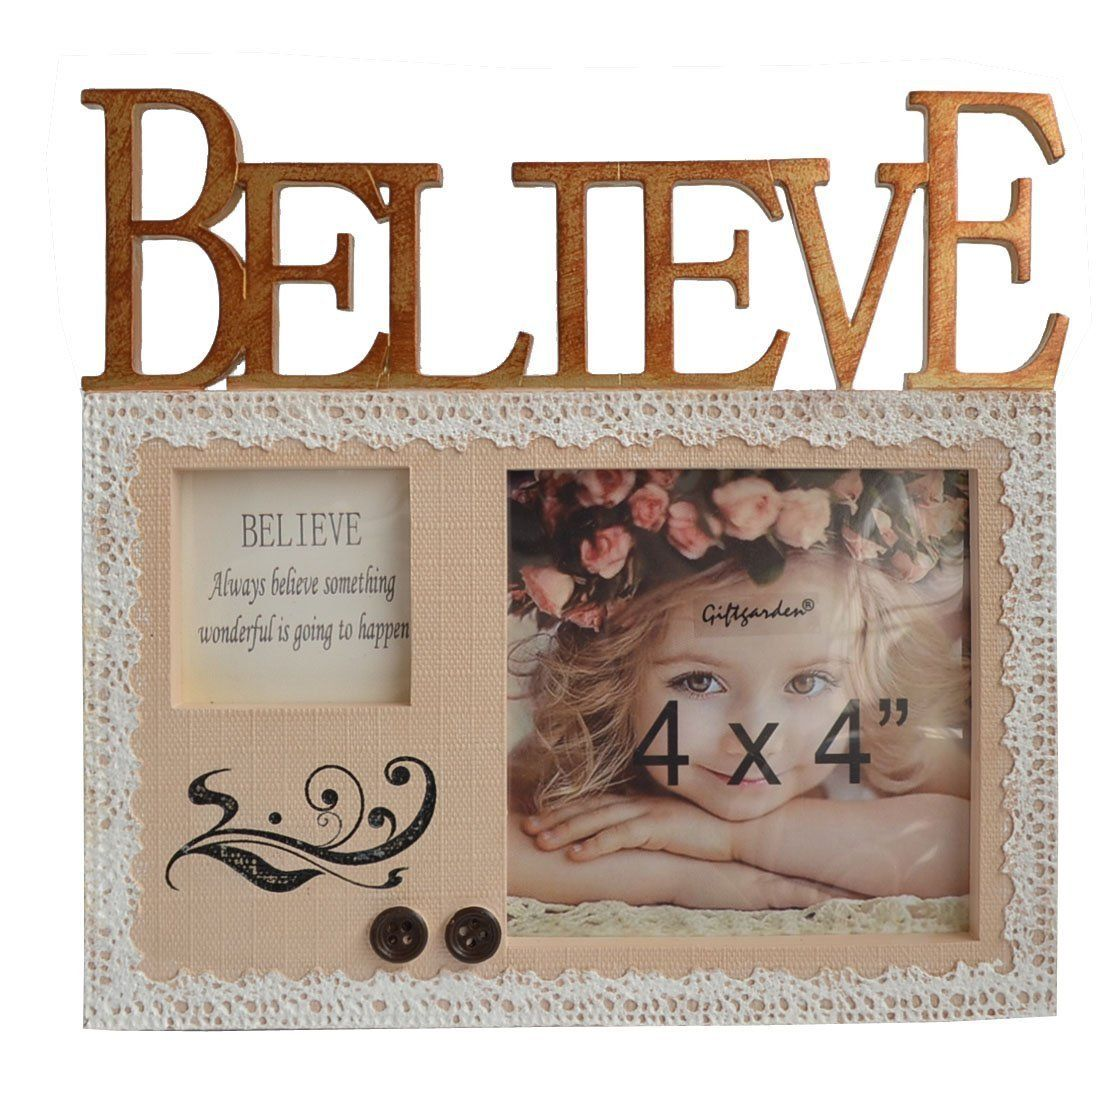 Giftgarden Friends Gift Believe Picture Frame 4x4 for Photo Display ...